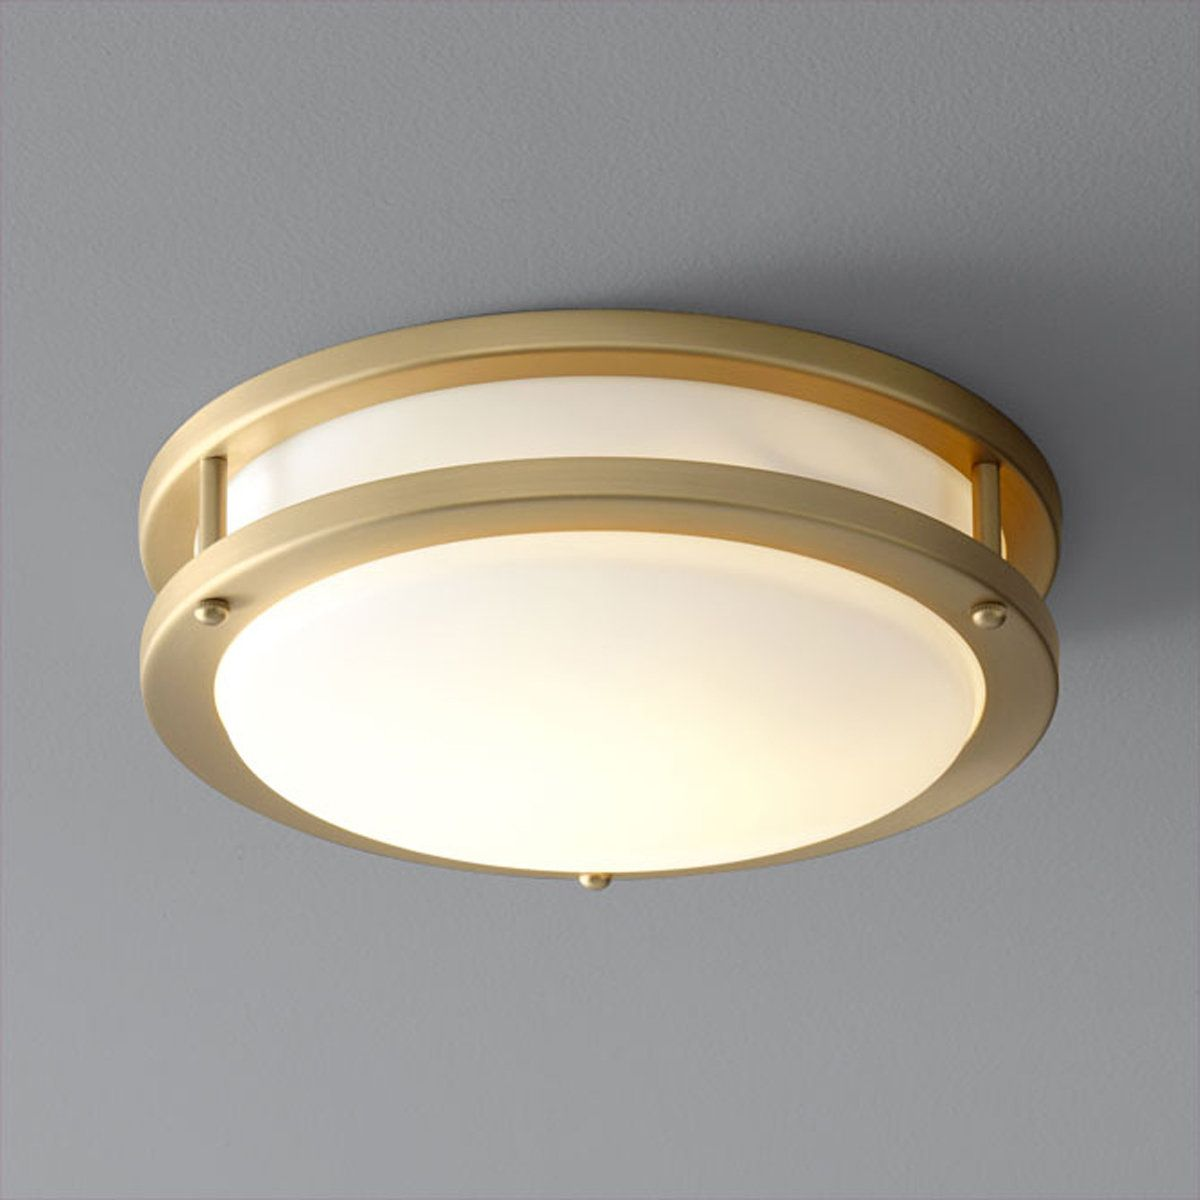 Formed Steel Wall And Ceiling Light Small Ceiling Lights Ceiling Light Design Flush Mount Ceiling Lights